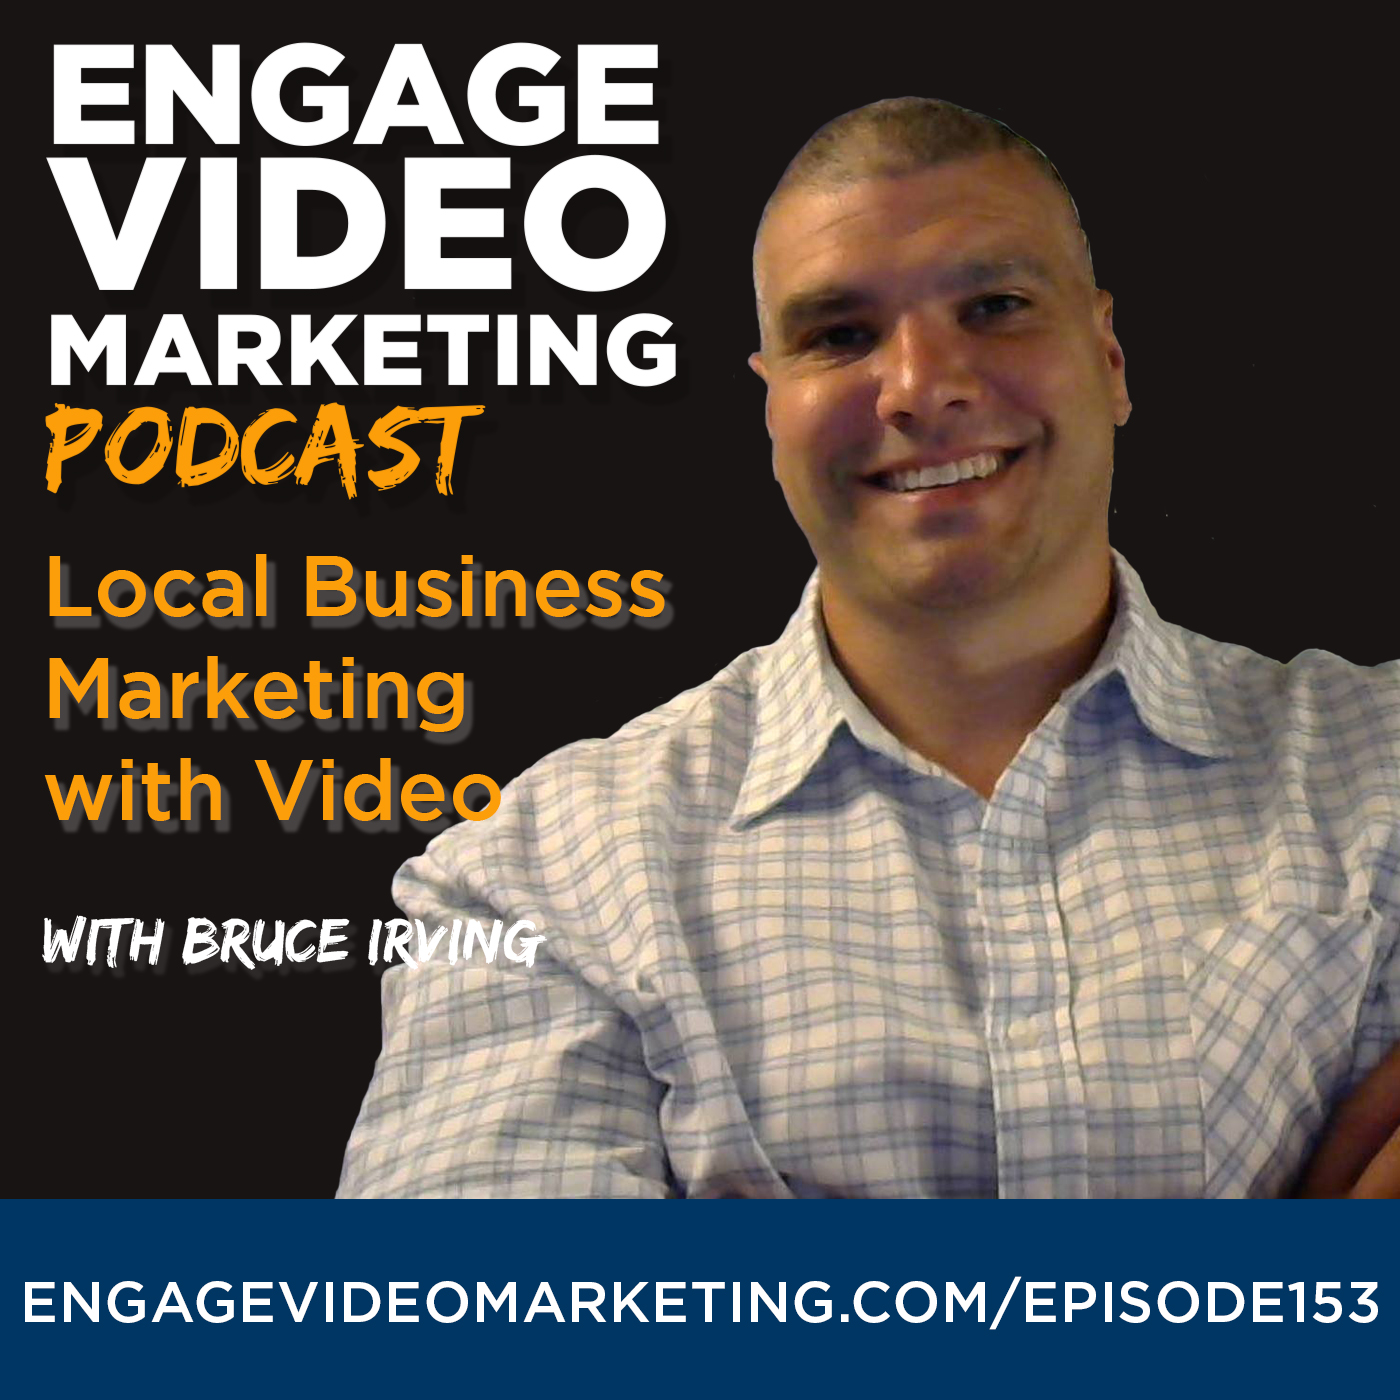 Local Business Marketing With Video with Bruce Irving